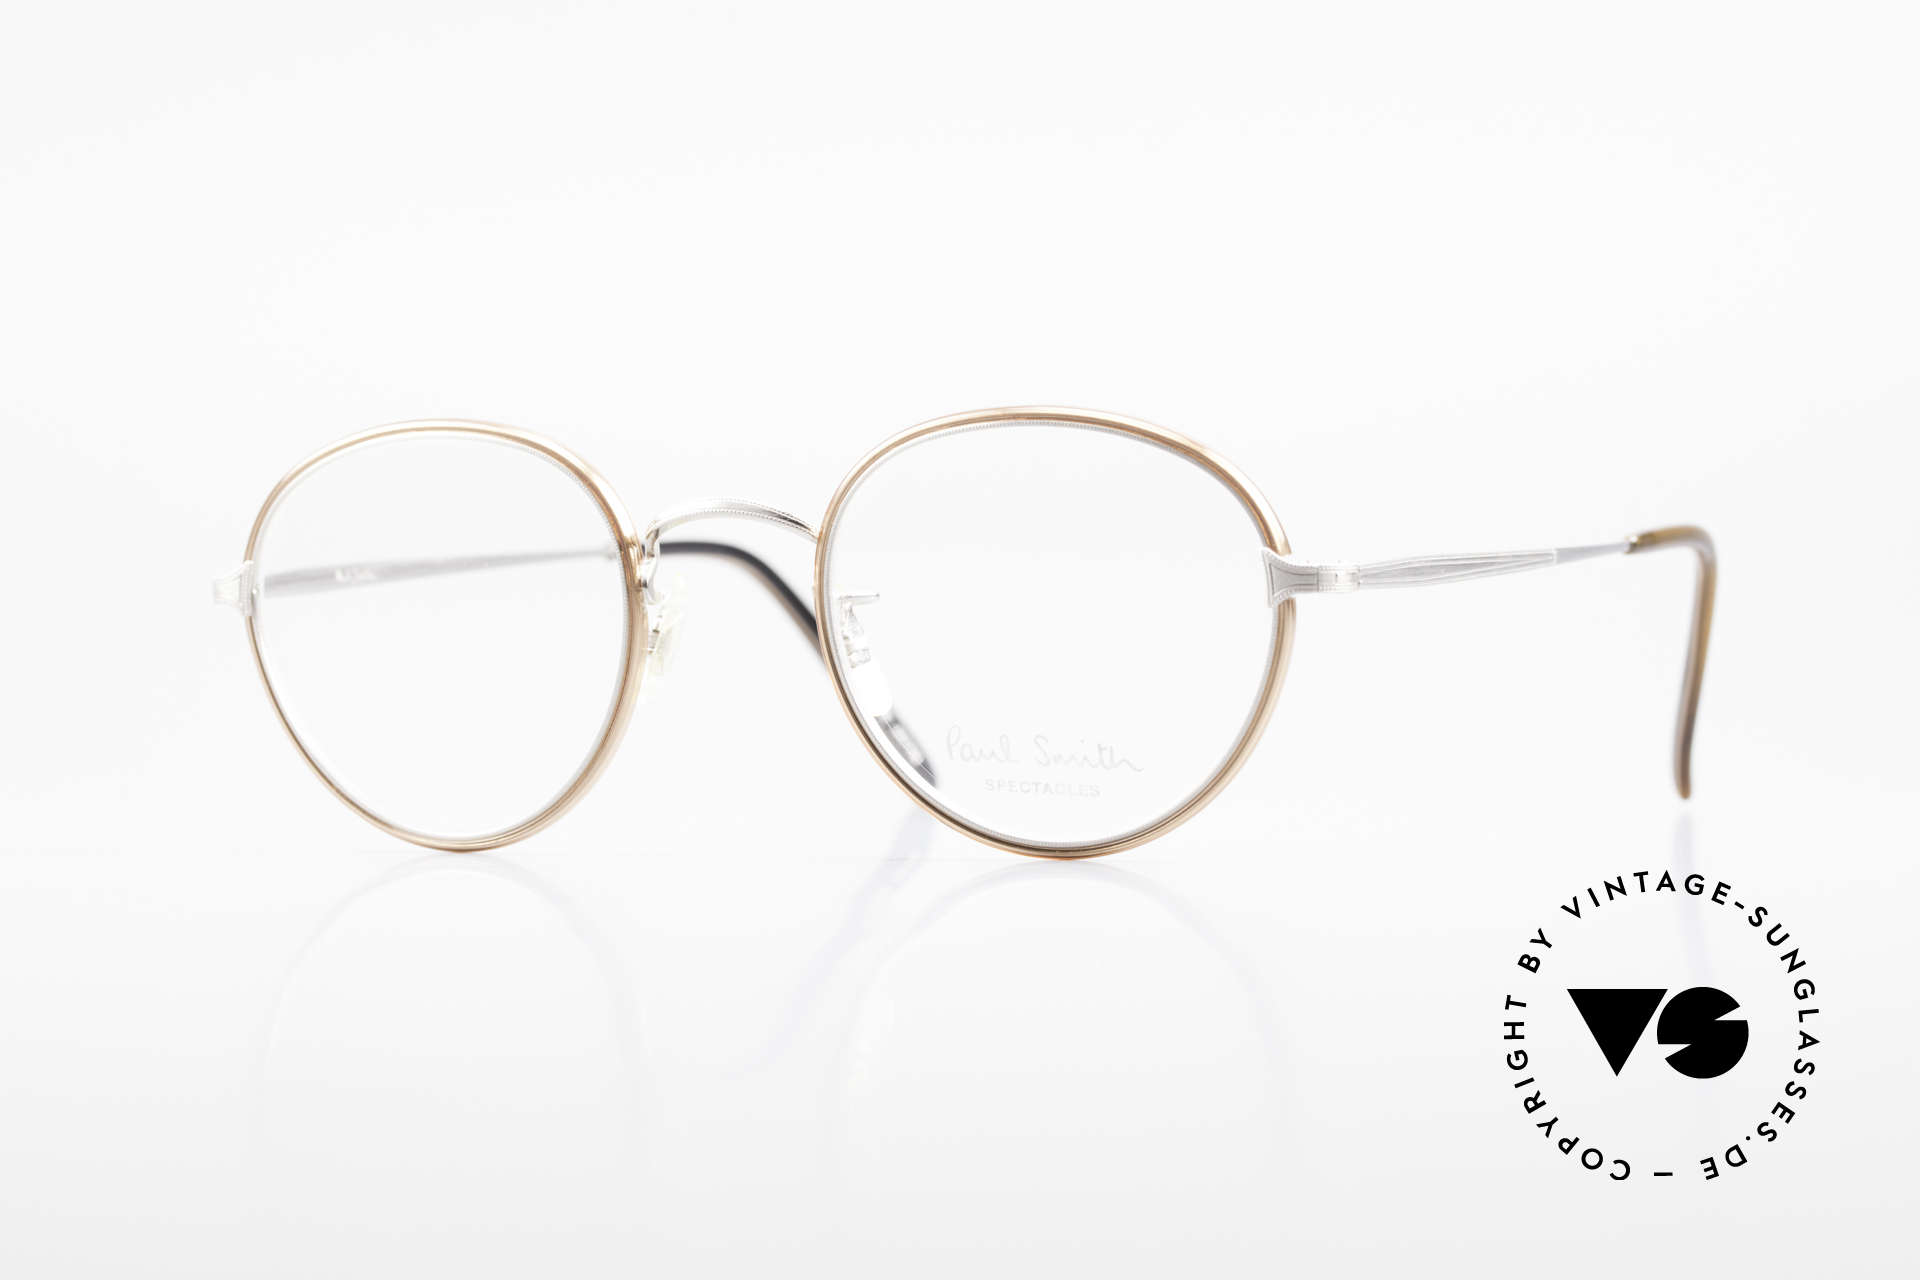 Paul Smith PSR109 Old Panto Frame Made in Japan, Paul Smith vintage glasses from the late 80's/early 90's, Made for Men